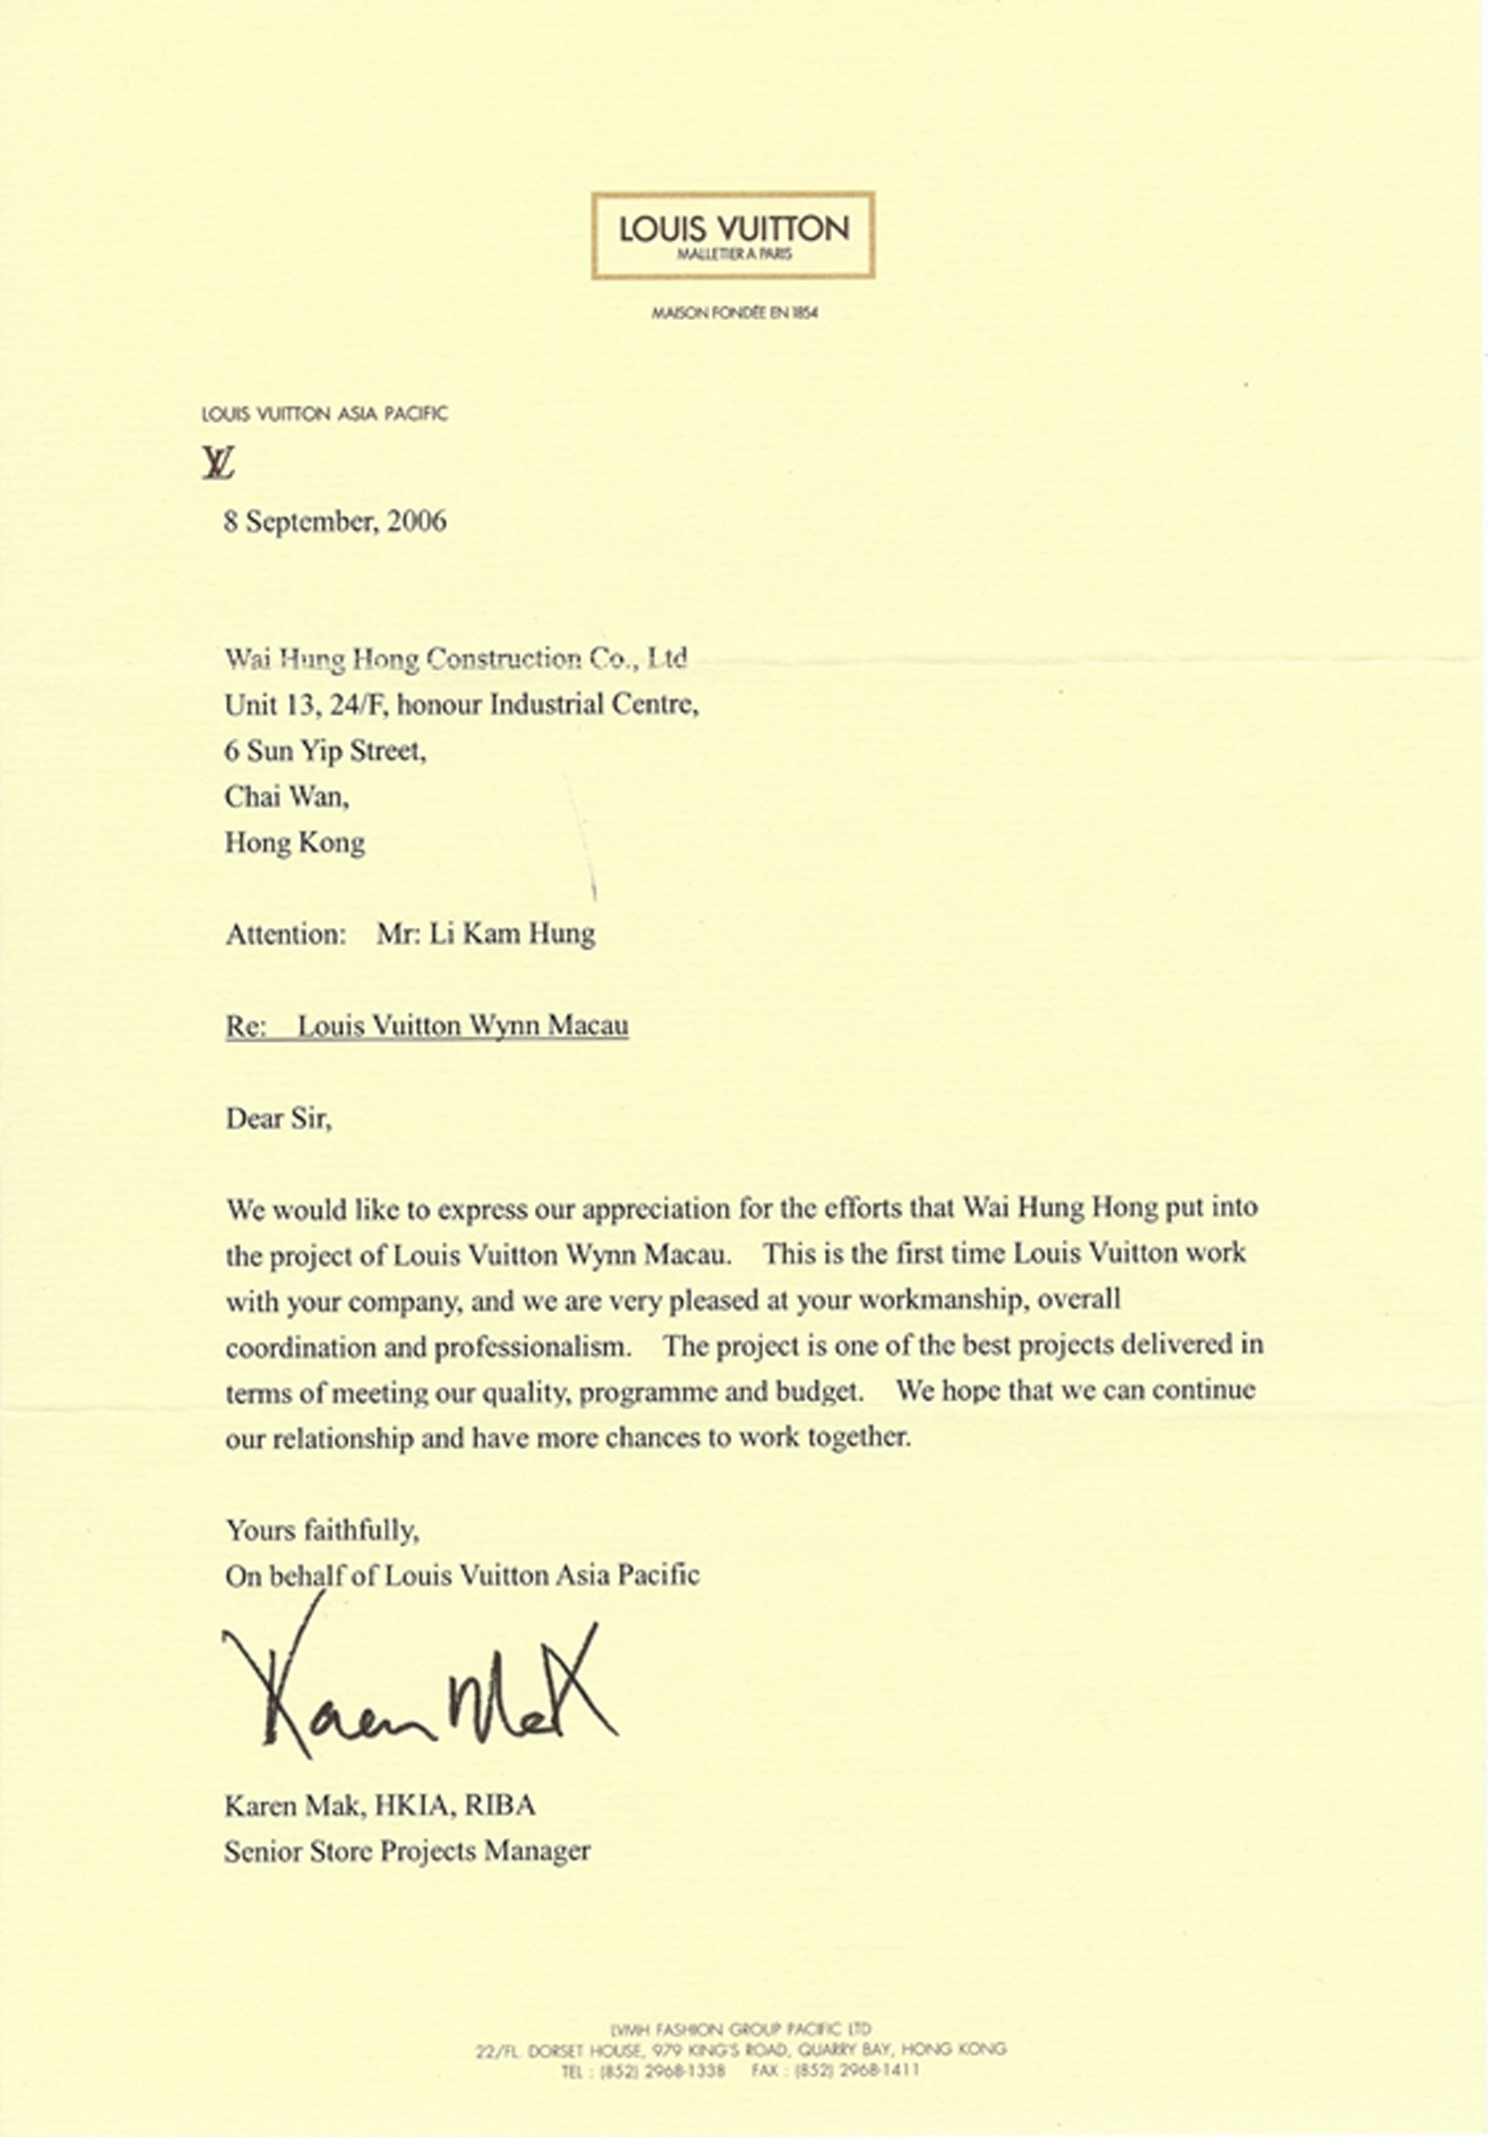 LOUIS VUITTON - LETTER OF APPRECIATION